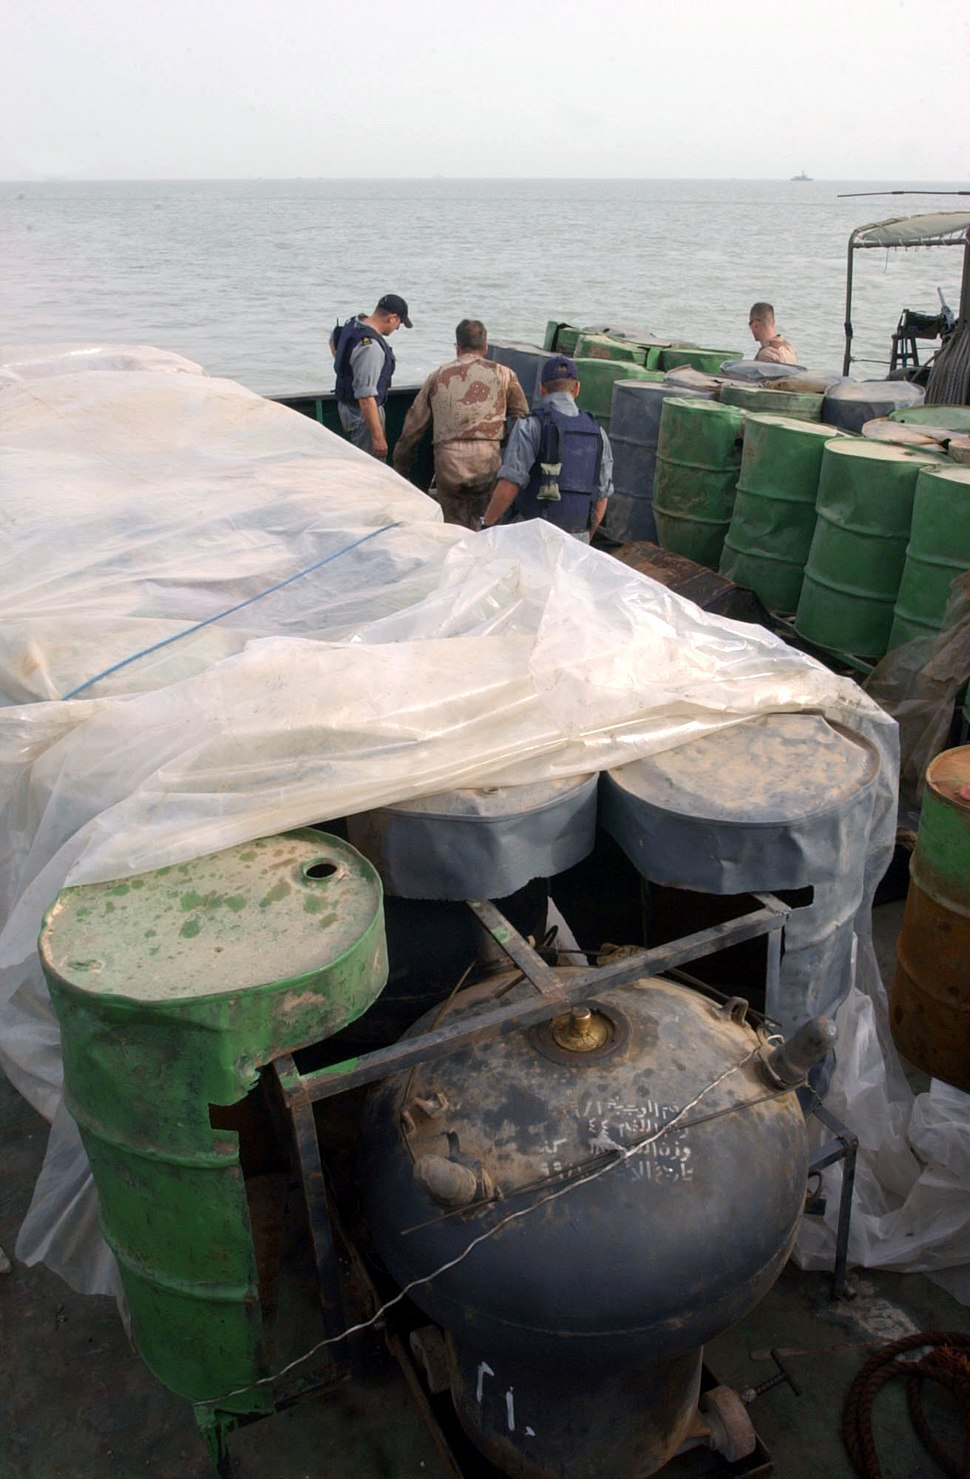 US Navy 030321-N-4655M-029 Coalition Navy Explosive Ordnance Disposal (EOD) team members inspect camouflaged mines hidden inside oil barrels on the deck of an Iraqi shipping barge